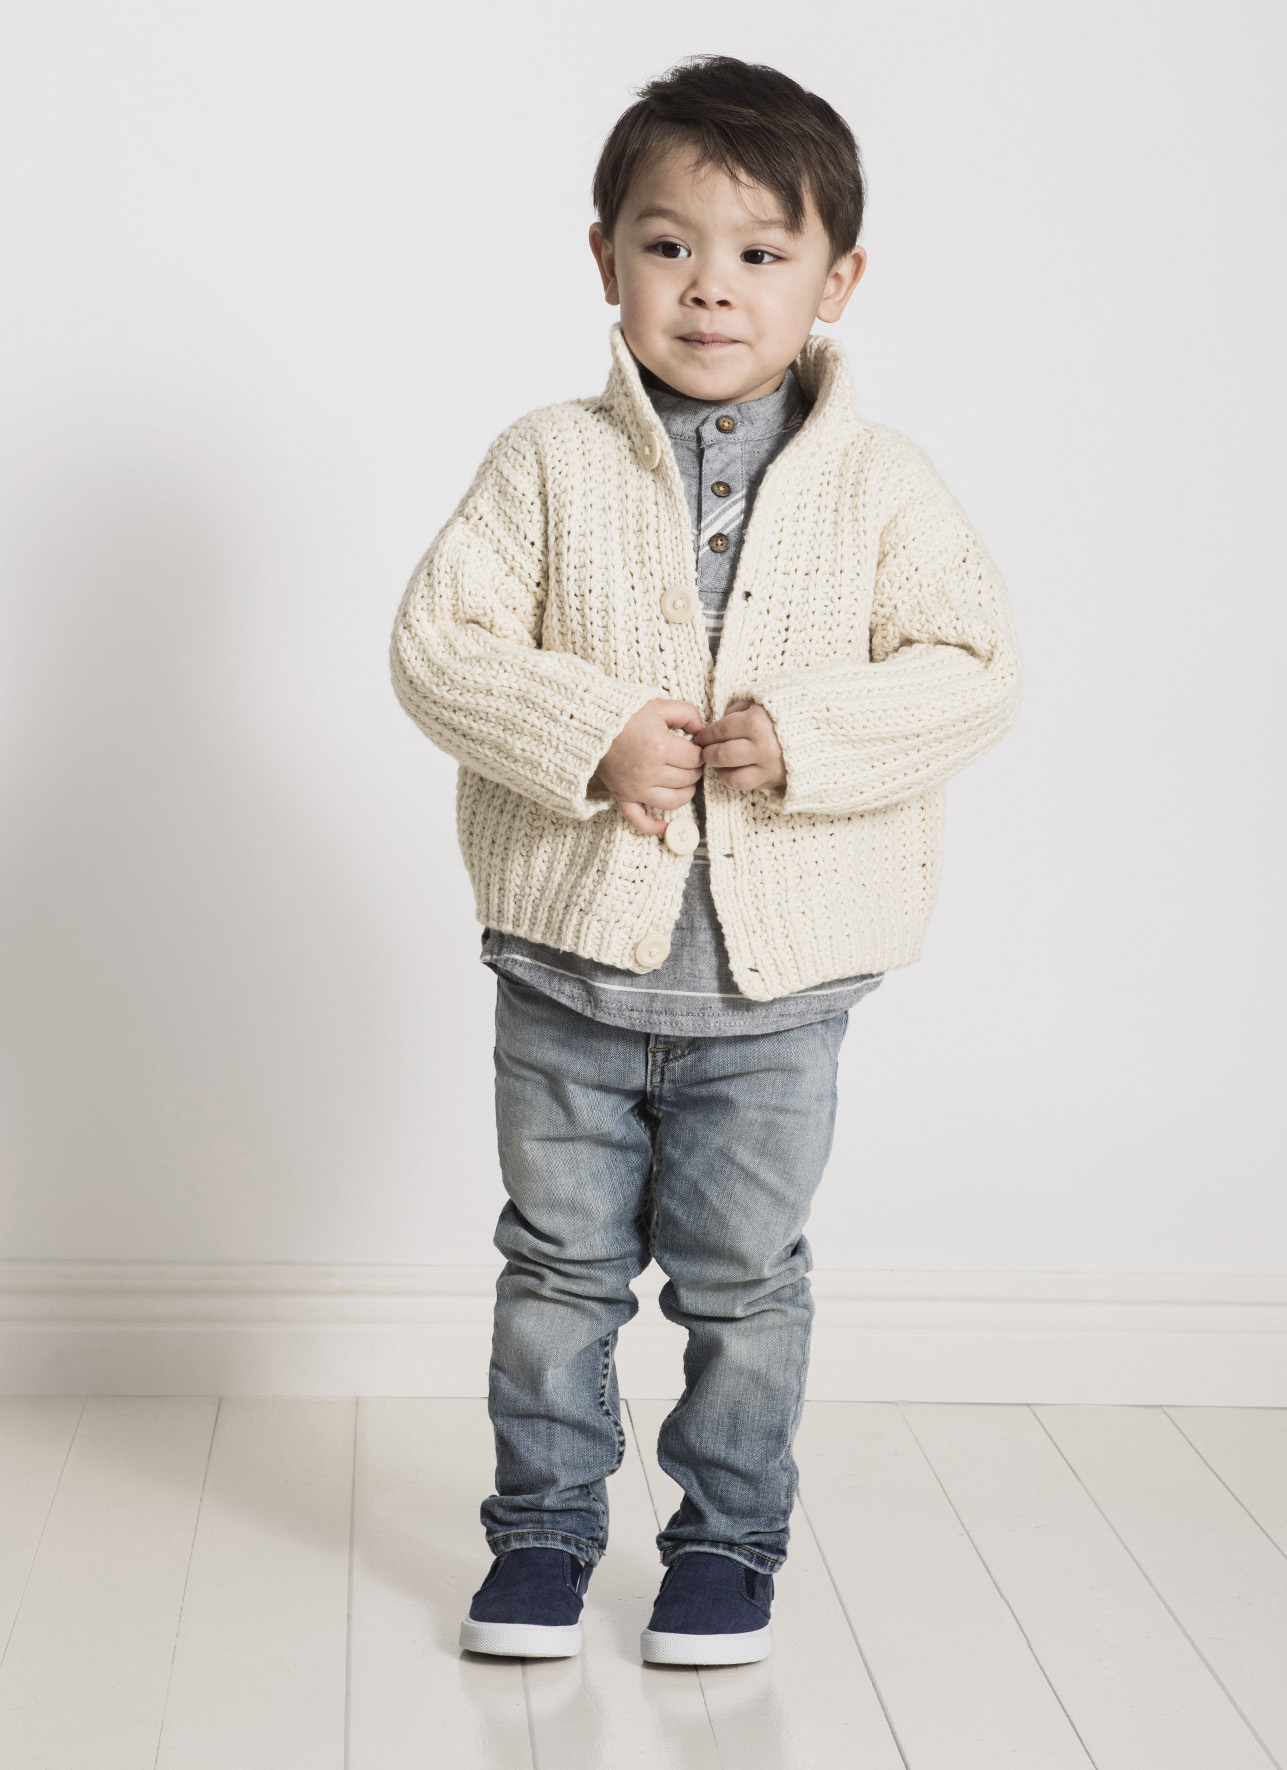 <strong>Cookies and Cream Cardi</strong><br>.<br>.